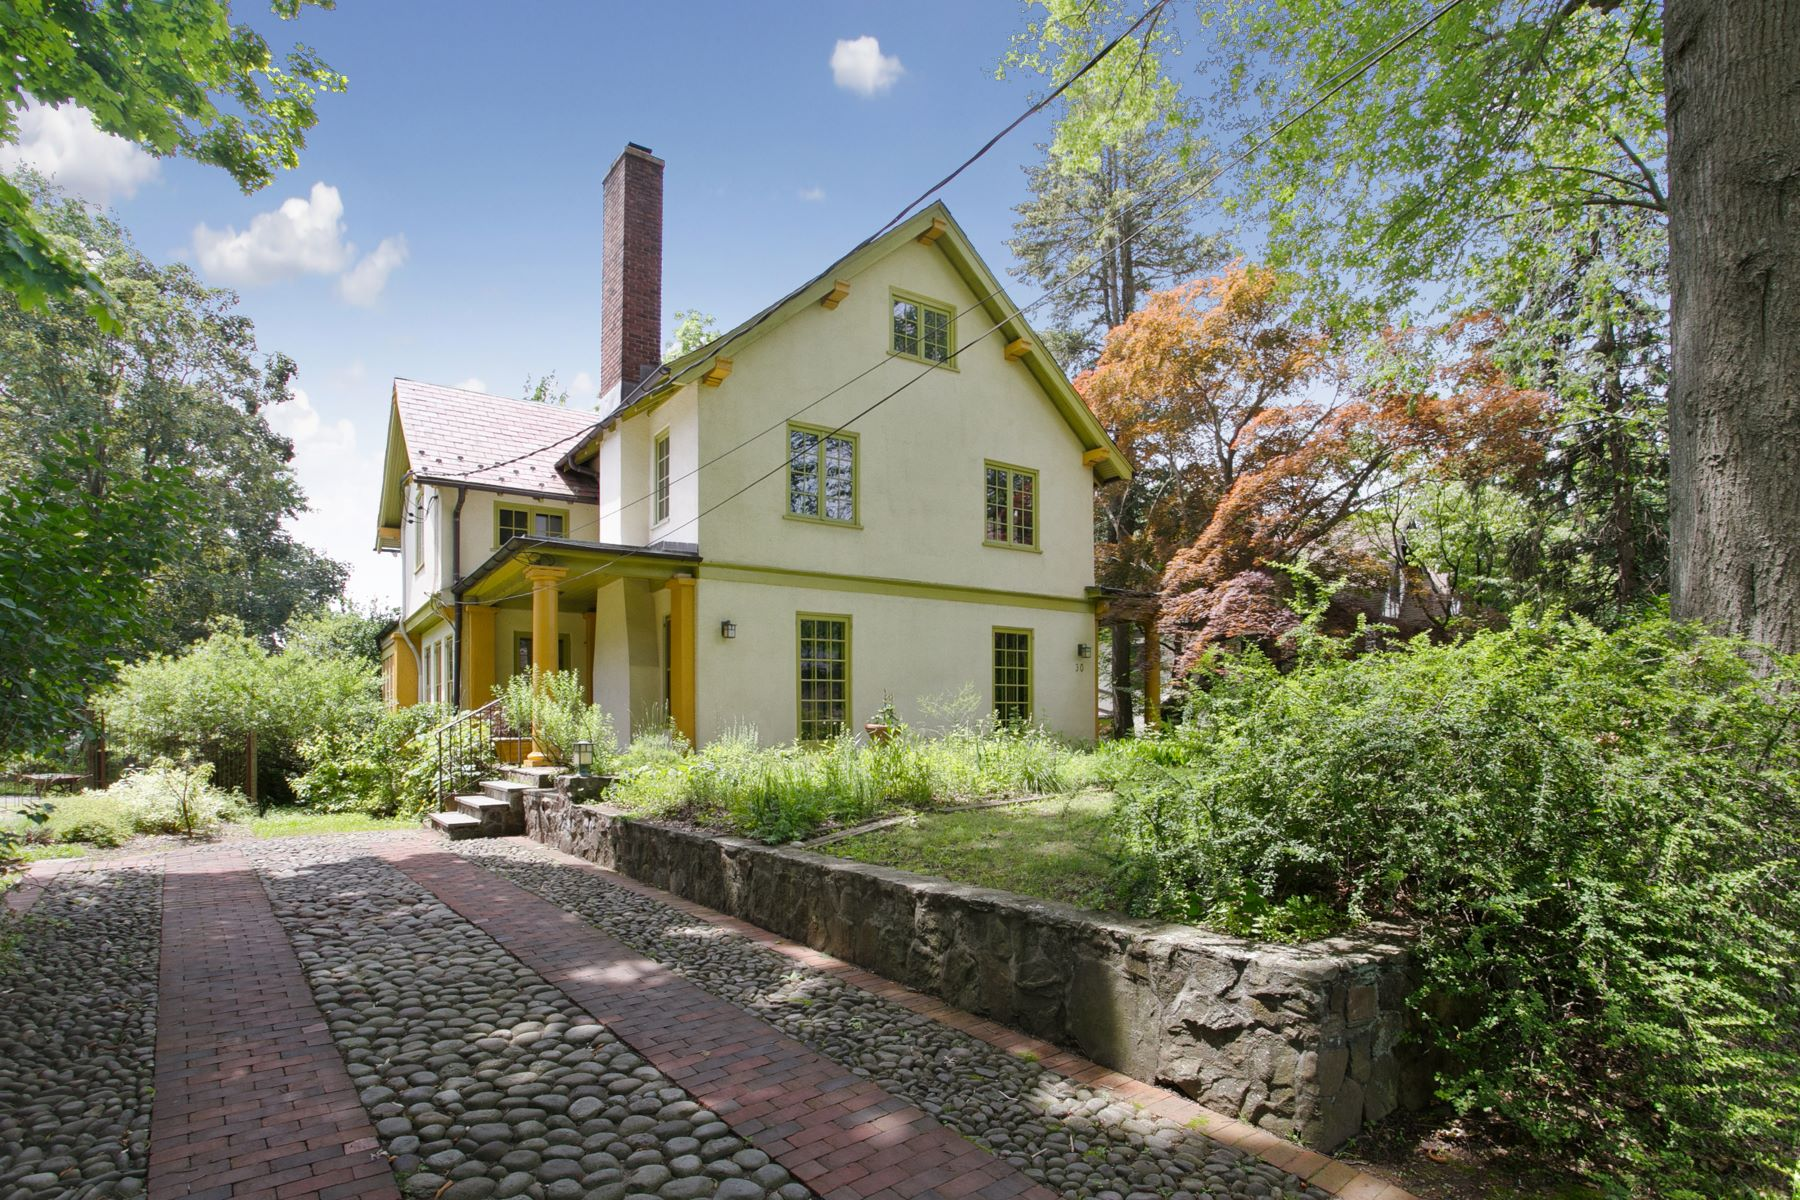 Single Family Homes for Sale at Enchanting Storybook Home 30 Fairview Ave Tarrytown, New York 10591 United States